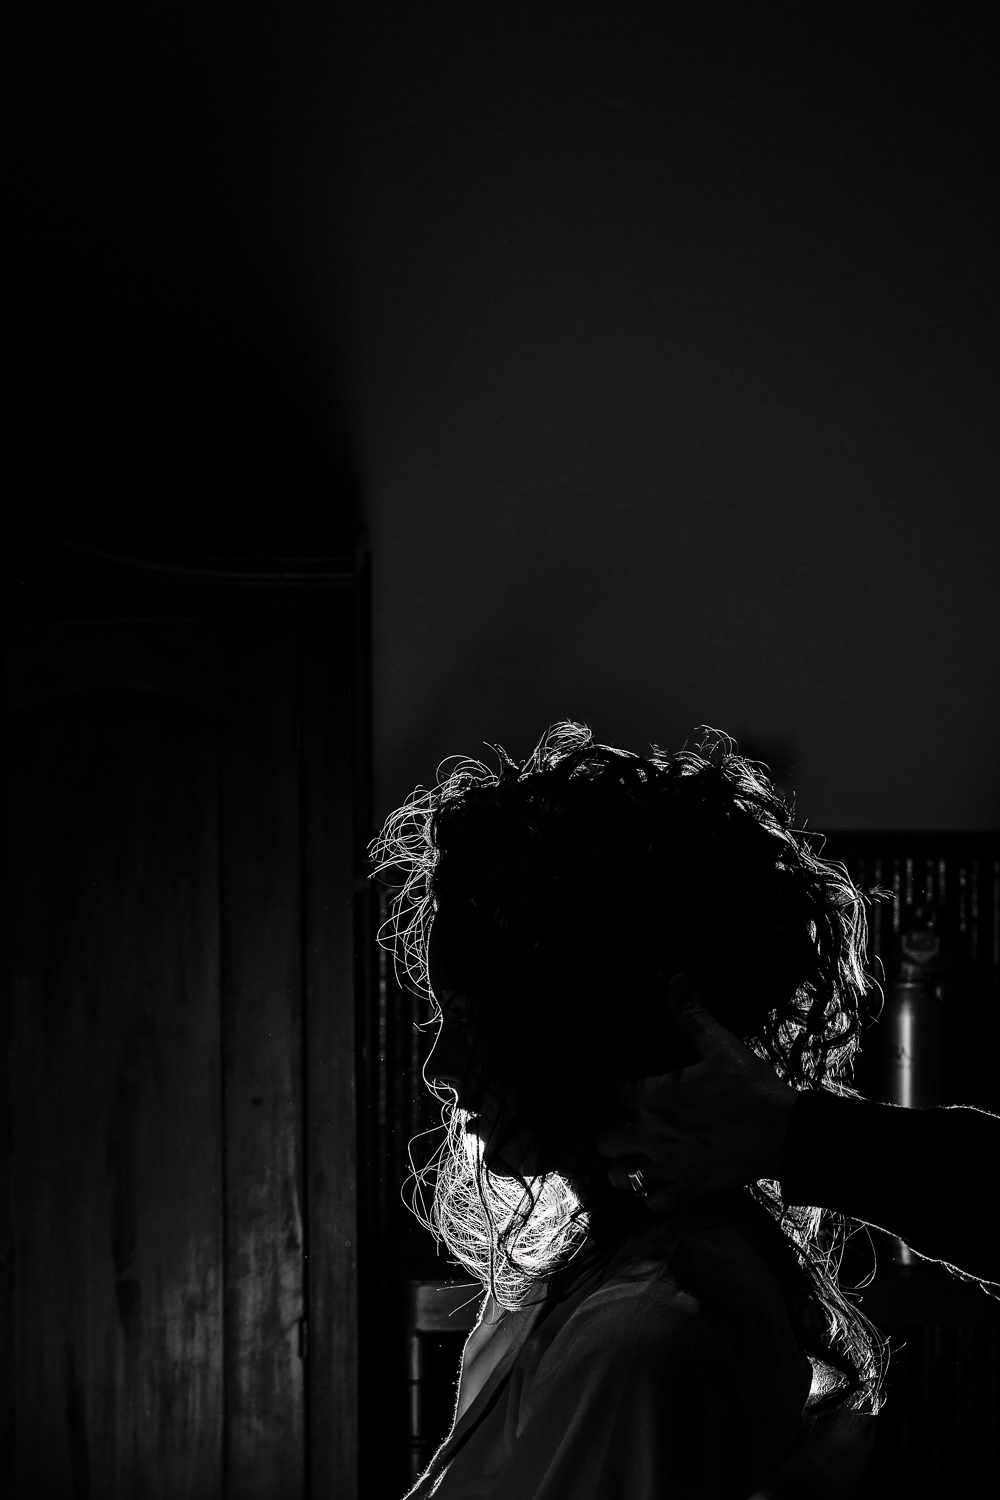 billings-montana-swift-river-ranch-wedding-bride-silhouette.jpg